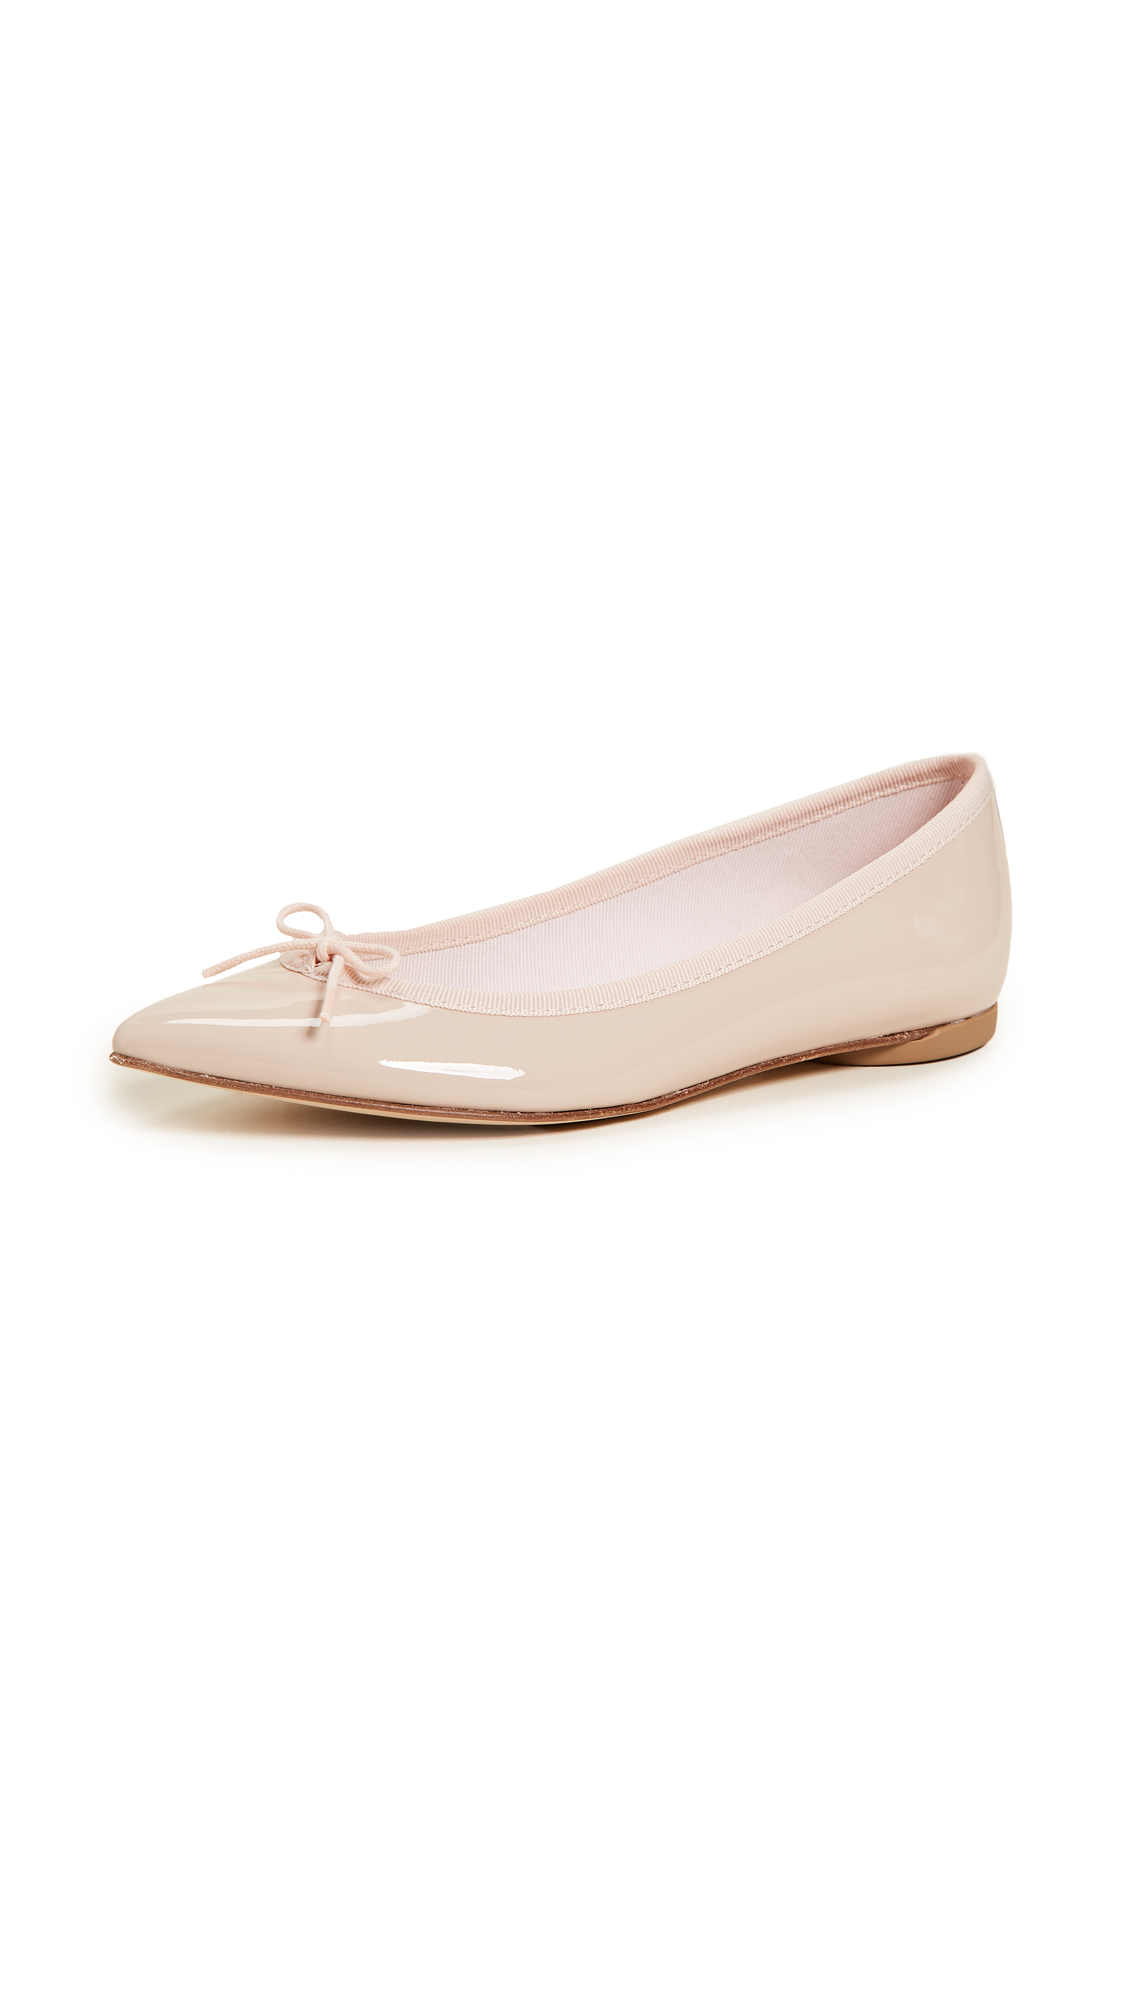 Repetto Brigitte Pointed Toe Ballet Flats - Pastel Pink